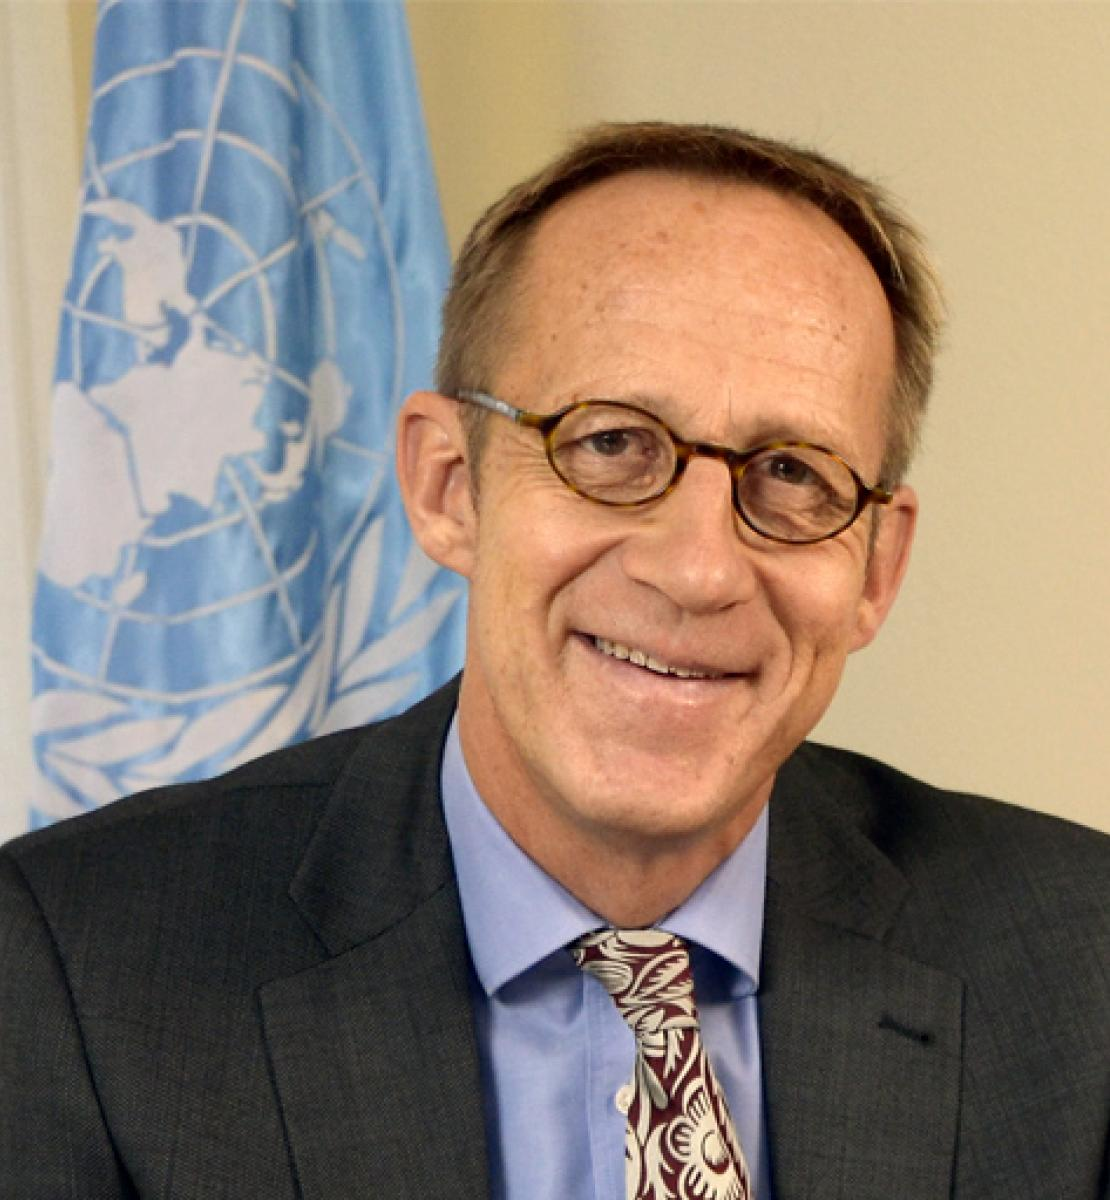 A portrait of Niels Scott, newly appointed UN Resident Coordinator in Liberia